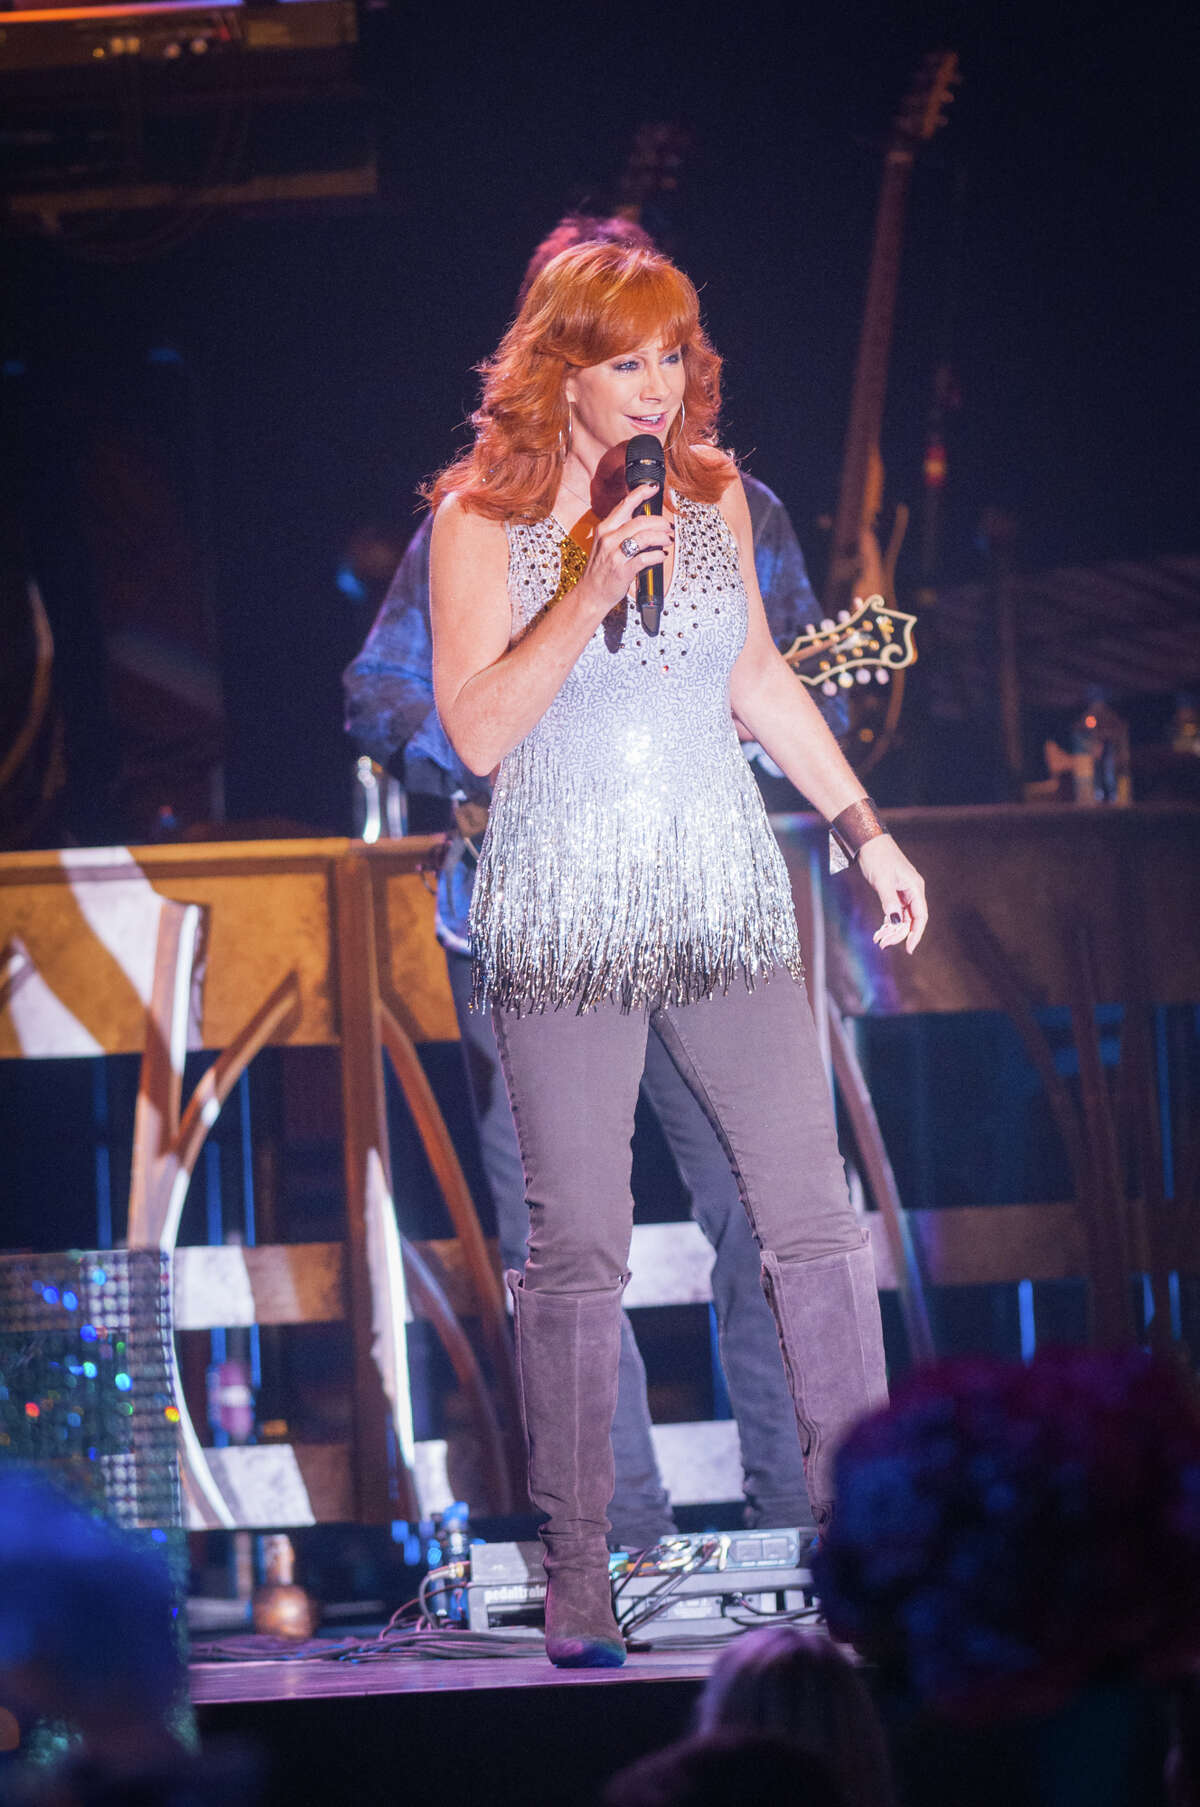 Catch Reba McEntire at Mohegan Sun on Friday. Find out more.